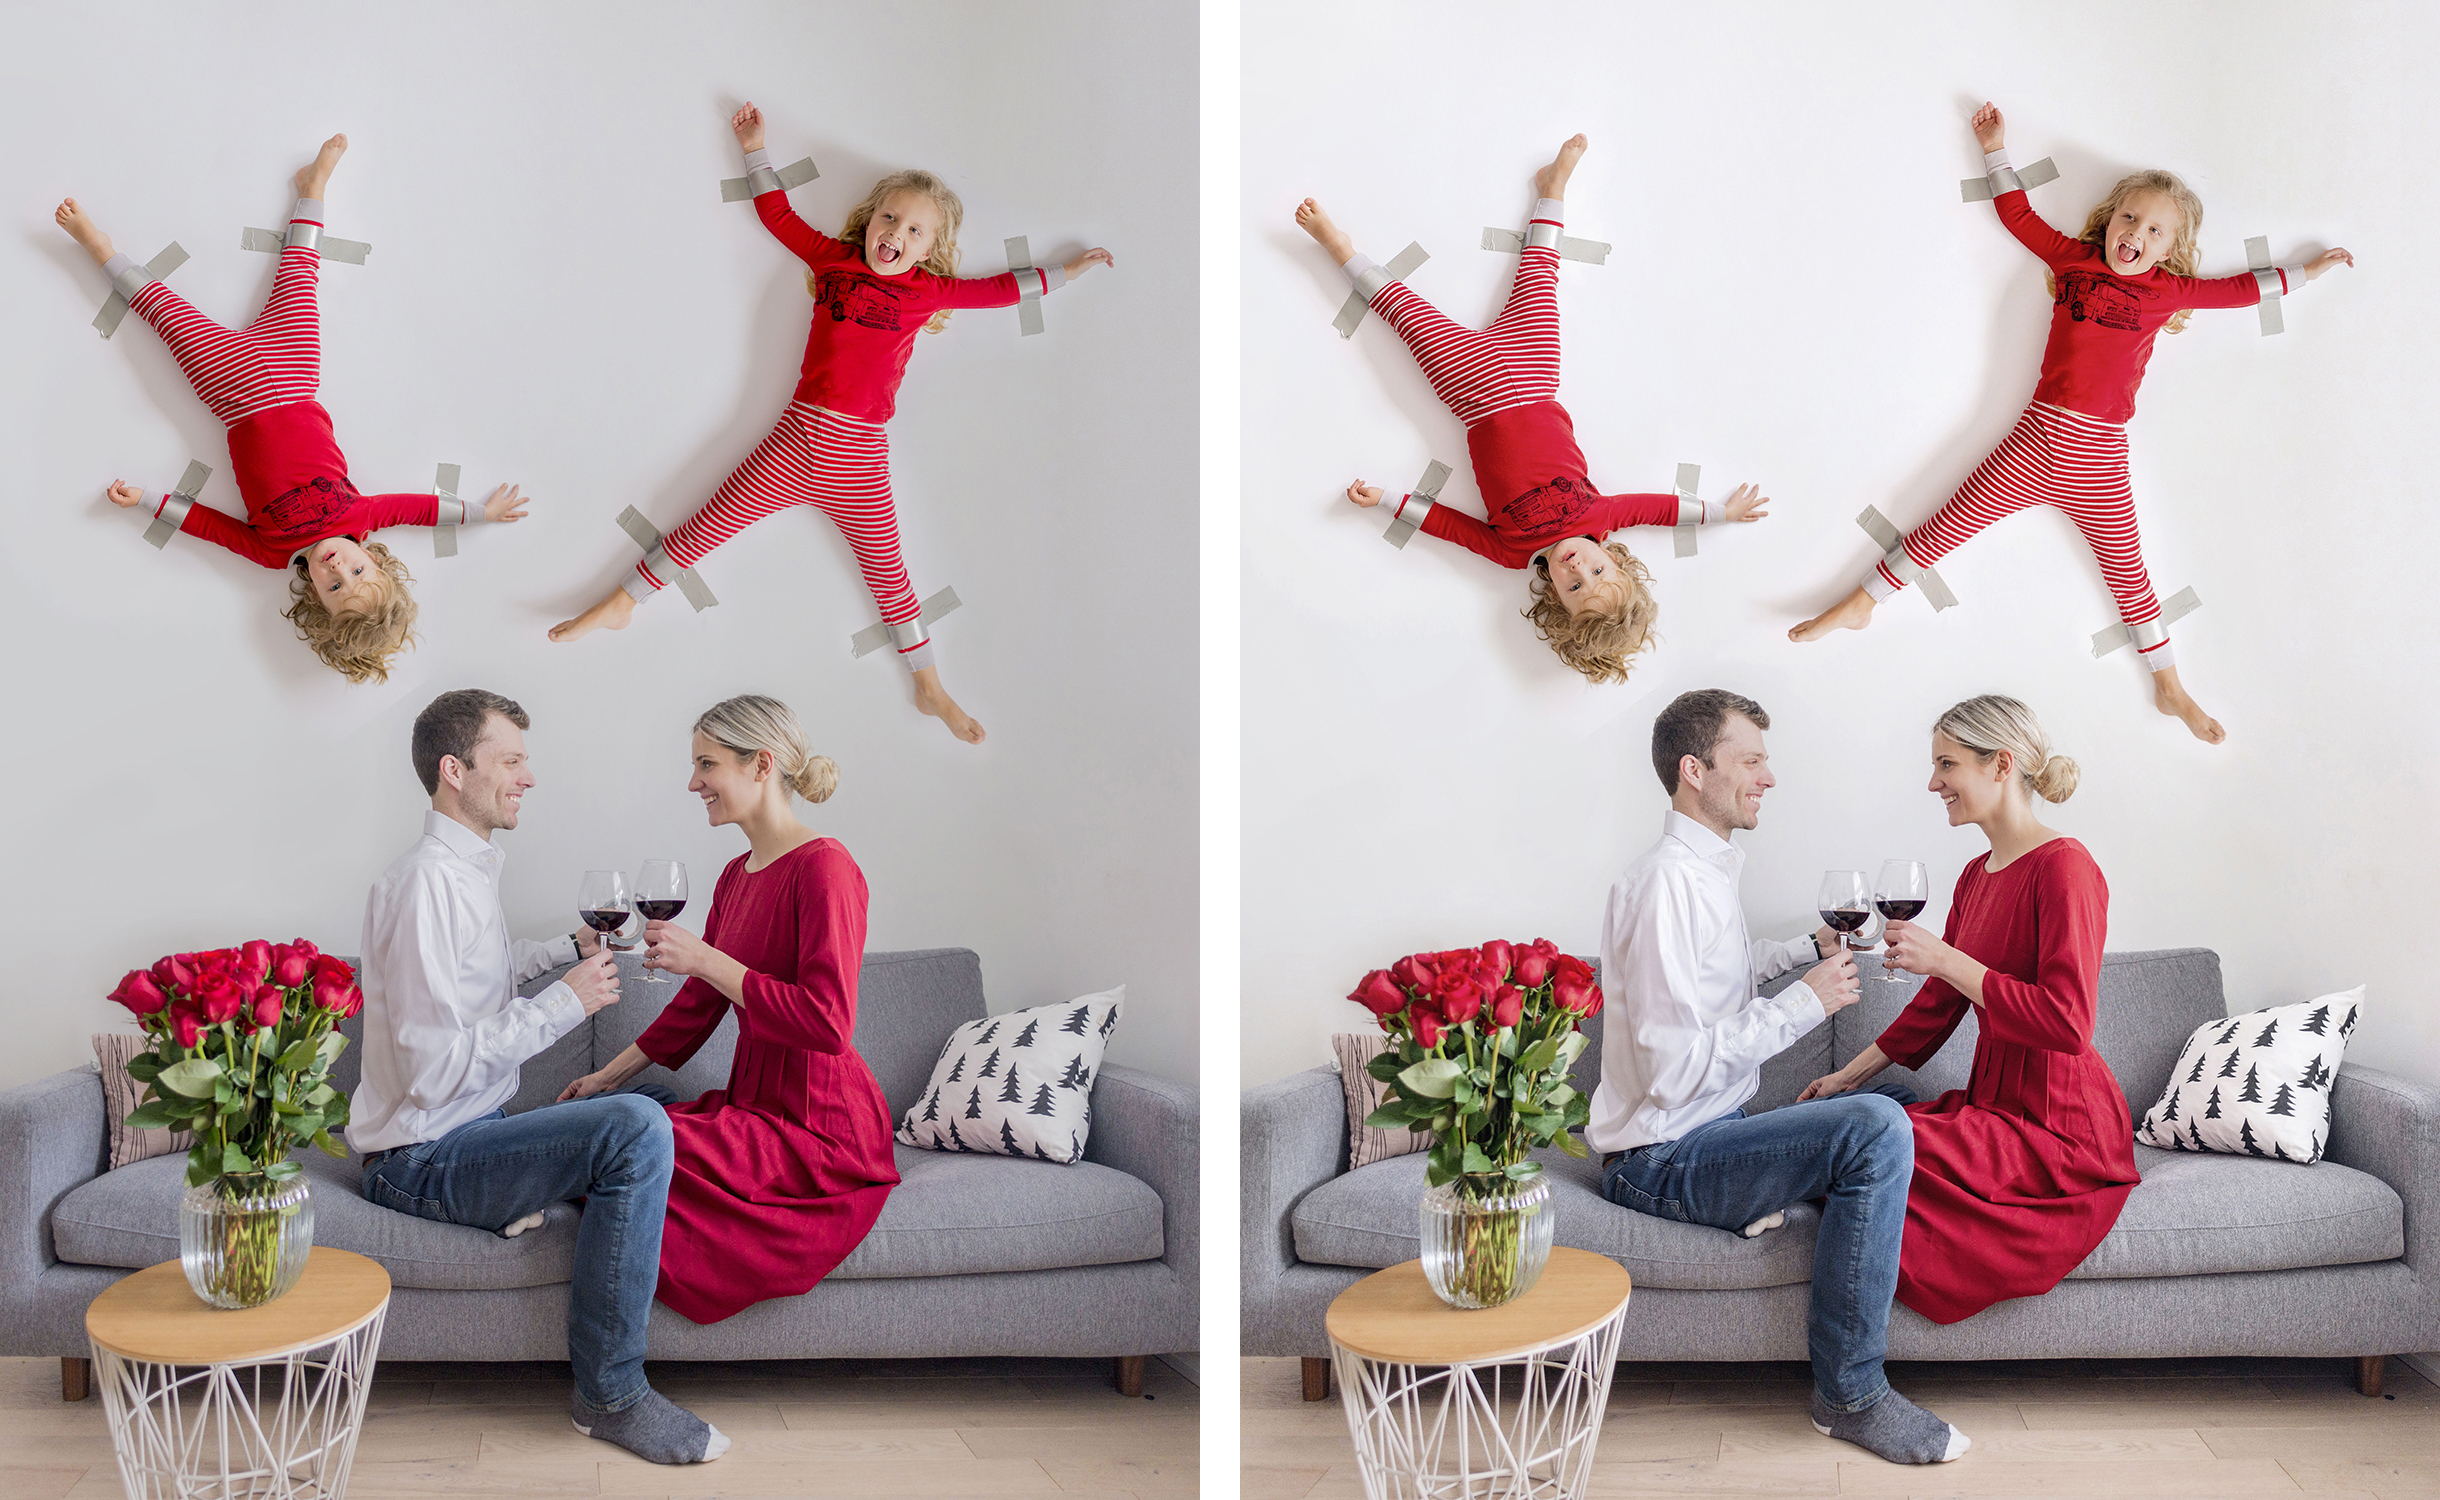 Kids duct-taped to the wall photo tutorial using Photoshop | Happy Grey Lucky